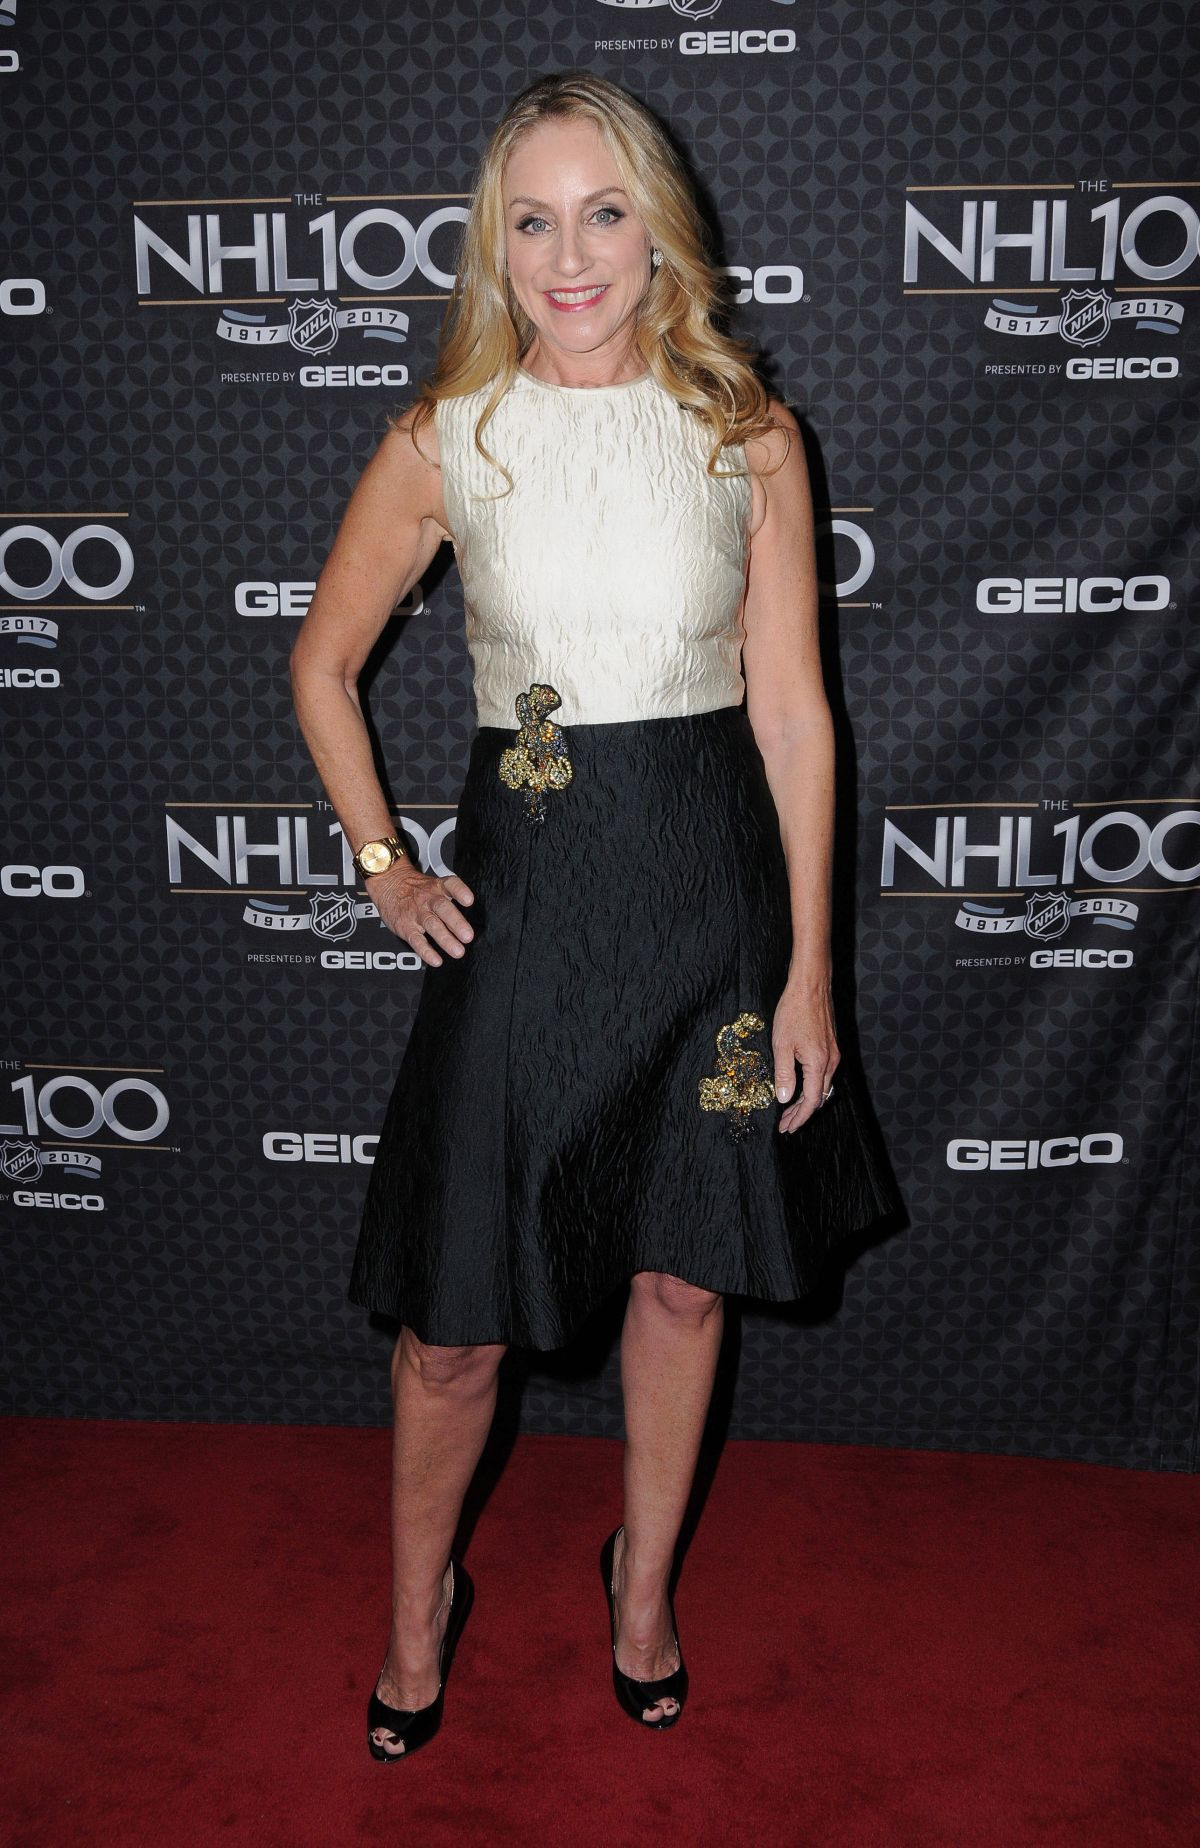 TRACY POLLAN at NHL 100 Presented by Geico at Microsoft Theater 01/27/2017